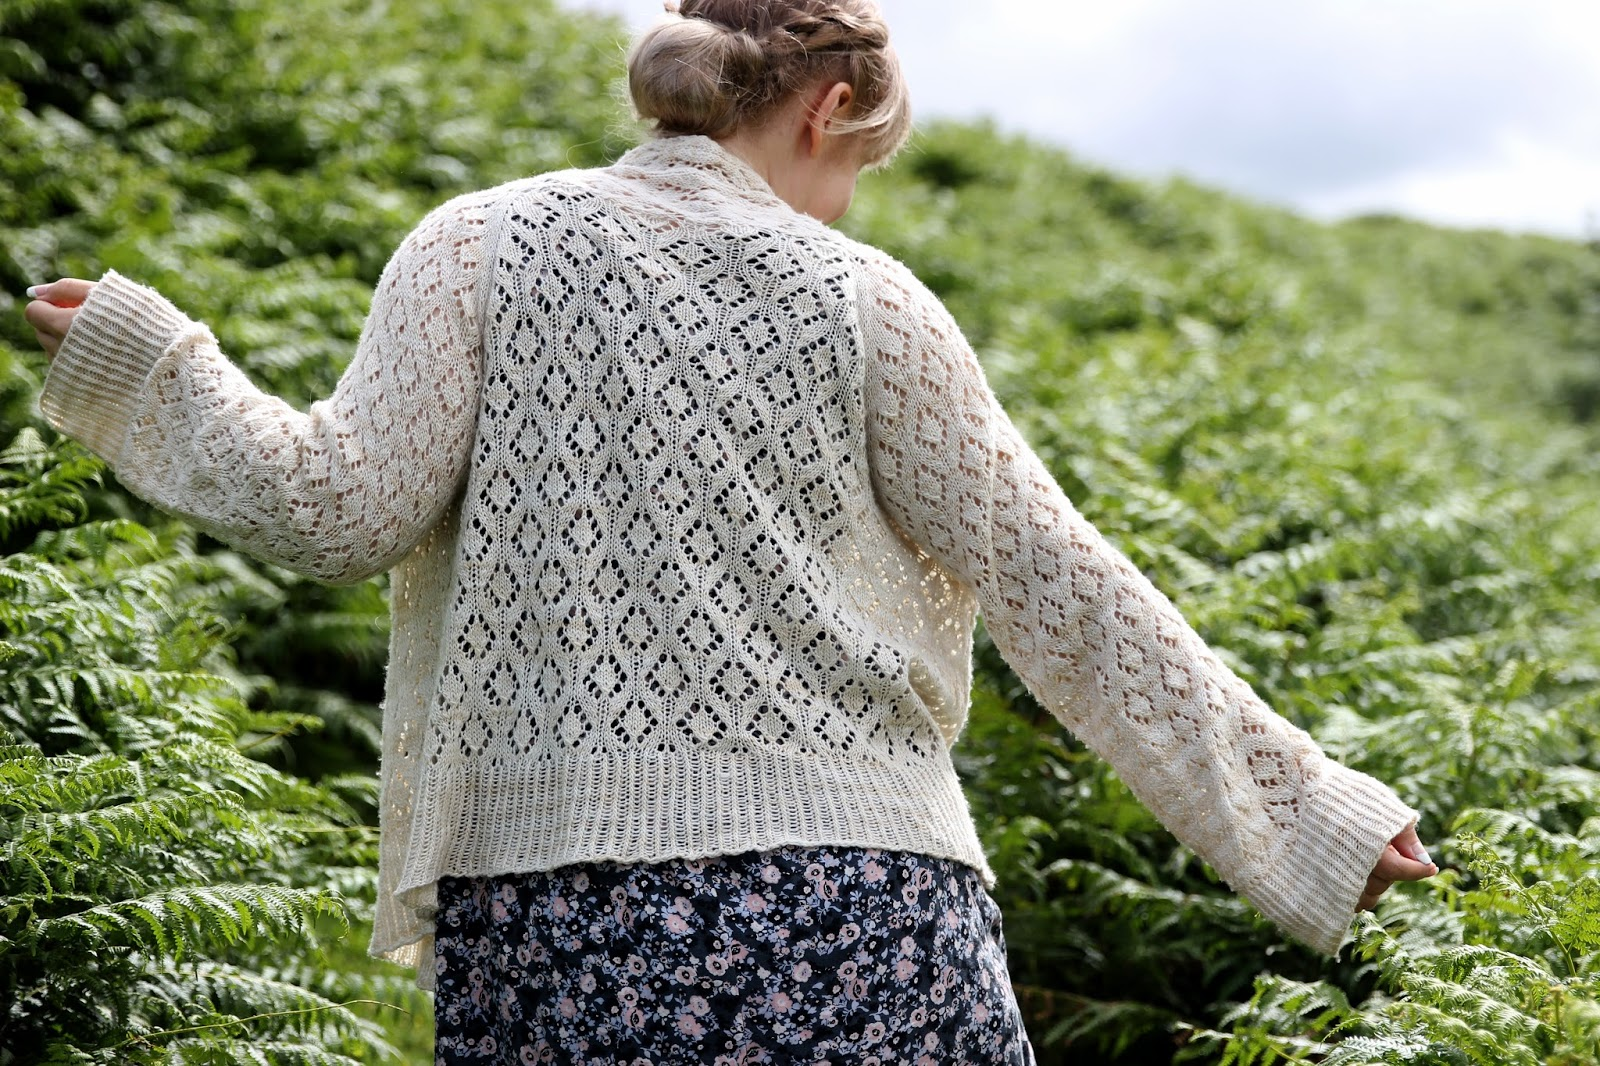 Where we once knitted: Lala